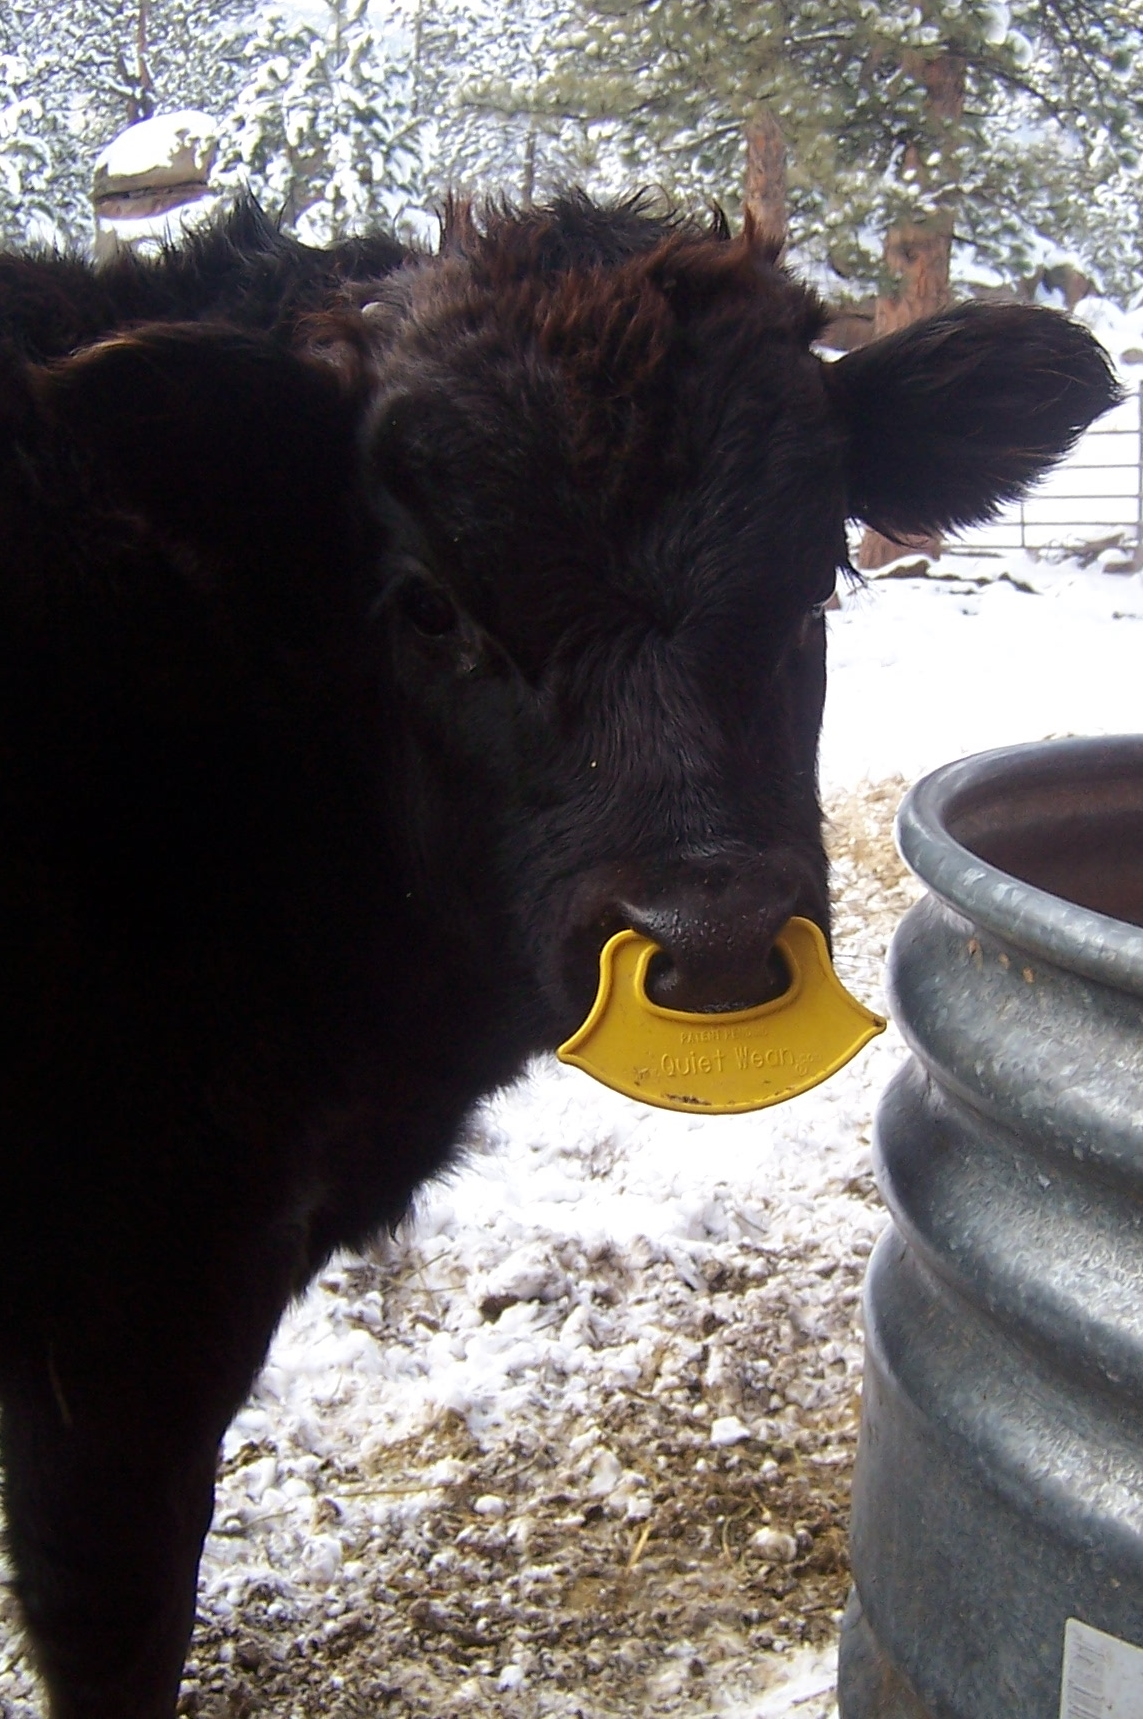 Using The Quiet Wean Calf Nose Ring To Wean Our Calf